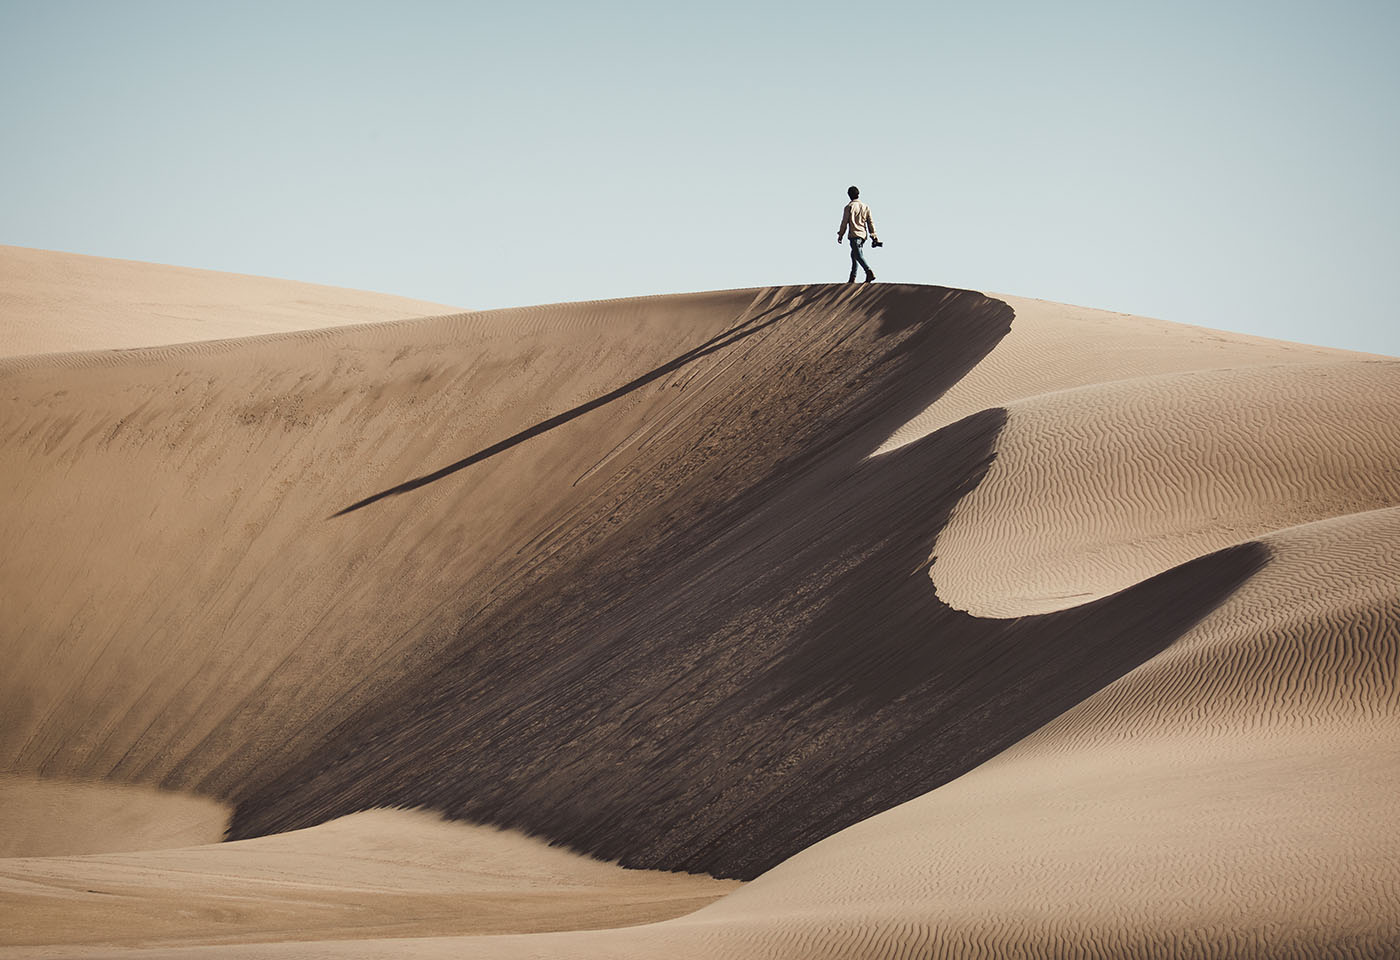 Landscape image of man on sand dunes